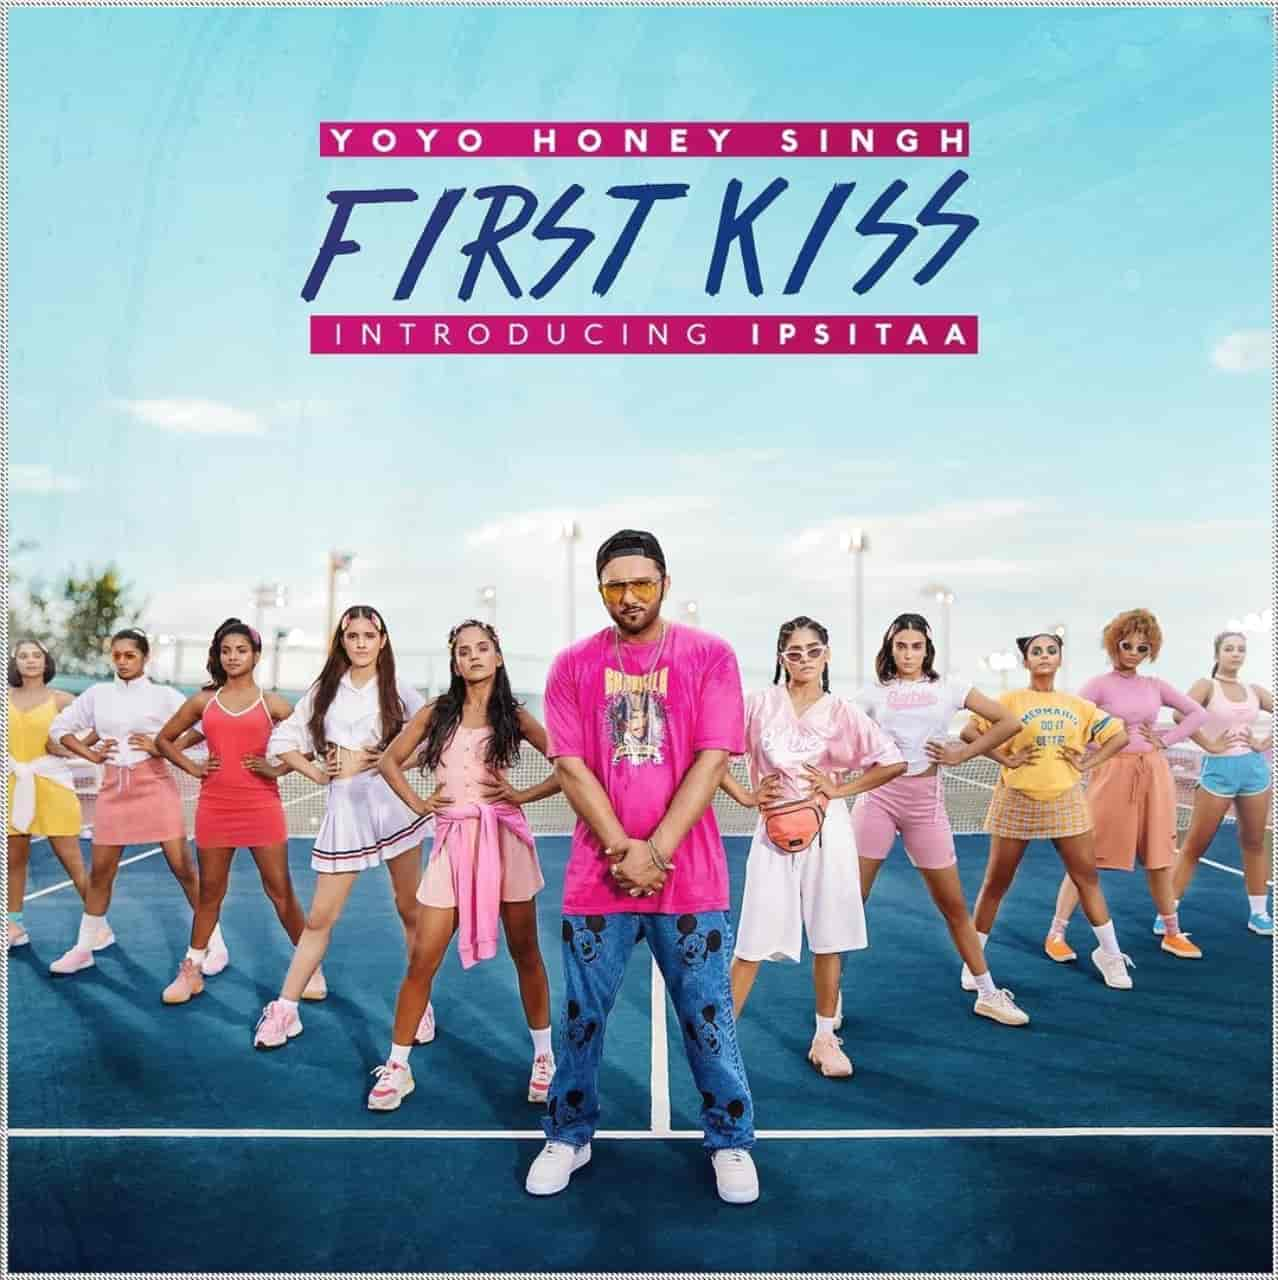 FIRST KISS RAP SONG IMAGE FEATURES HONEY SINGH AND IPSITAA